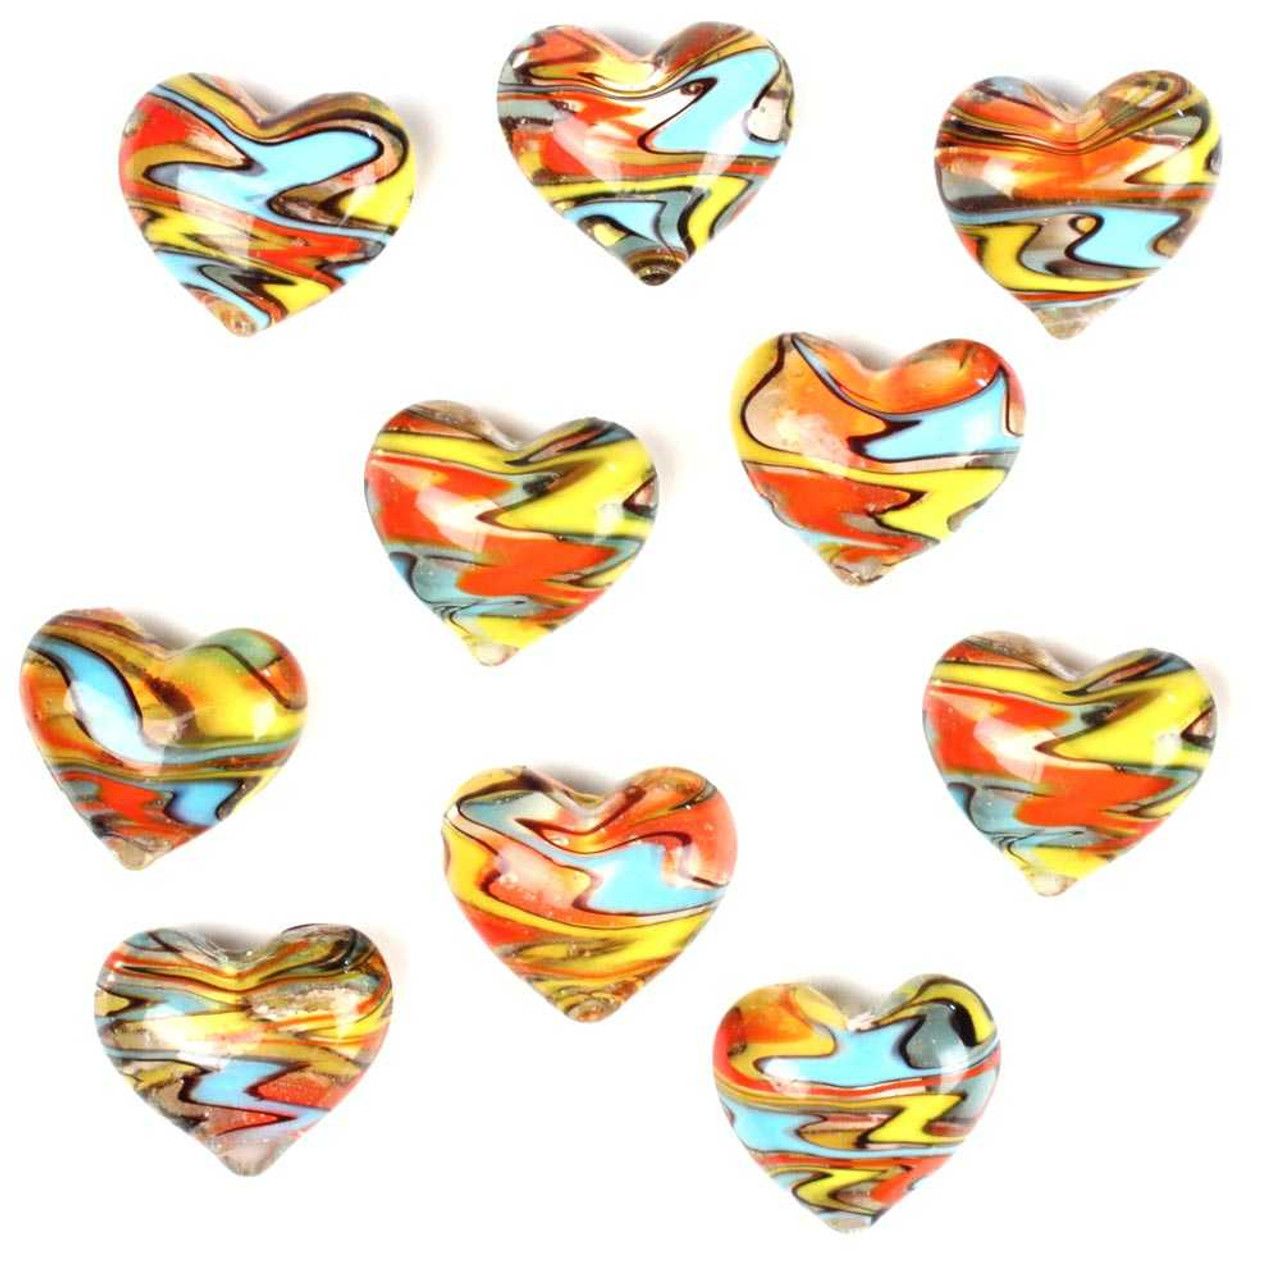 1 Round Glass Heart 25mm - FUNKY SWIRLS